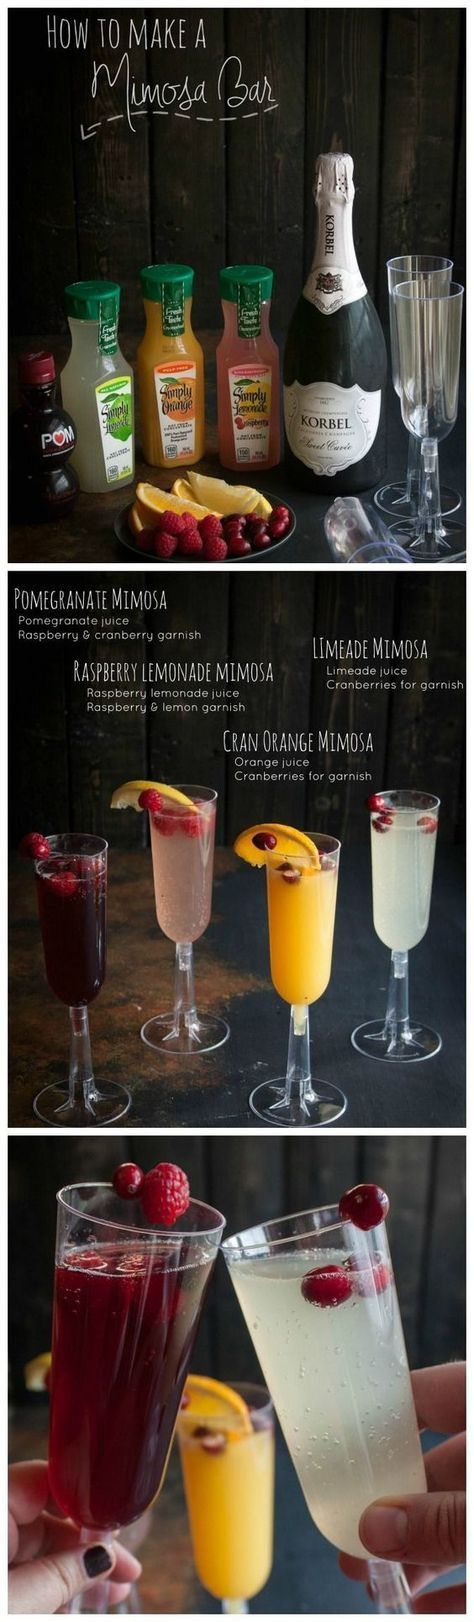 Hosting a brunch party soon? Here's your guide to making the best mimosa bar possible!